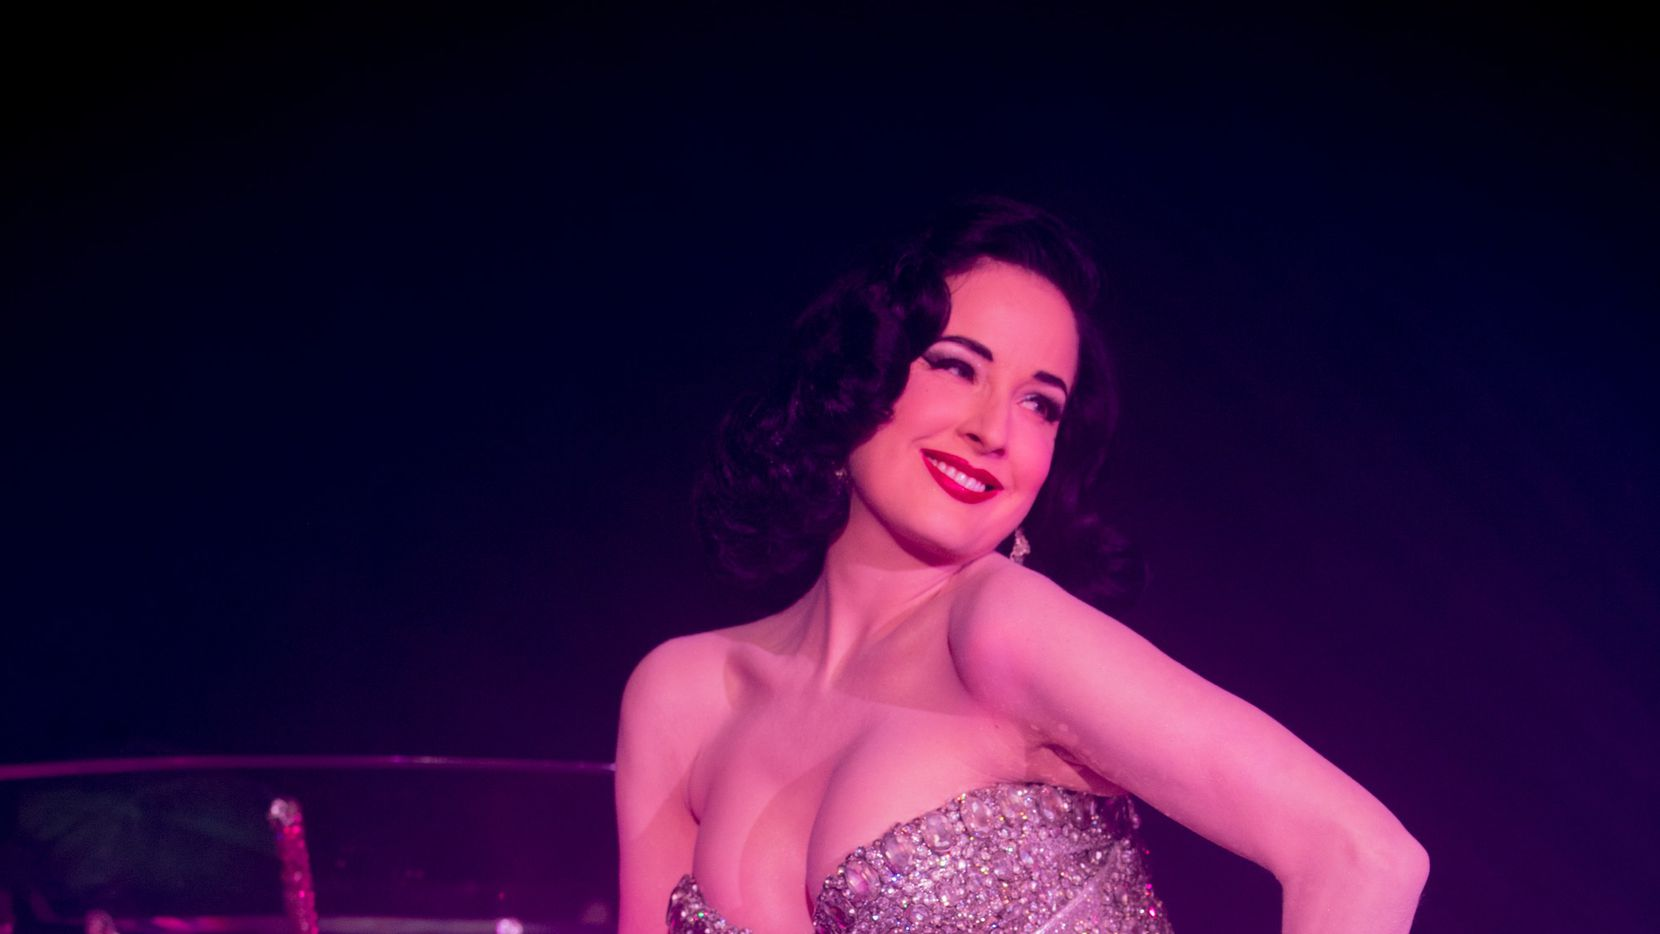 Burlesque star Dita von Teese performed in front of (and in) her giant martini glass at Friday's opening gala of Forty Five Ten.